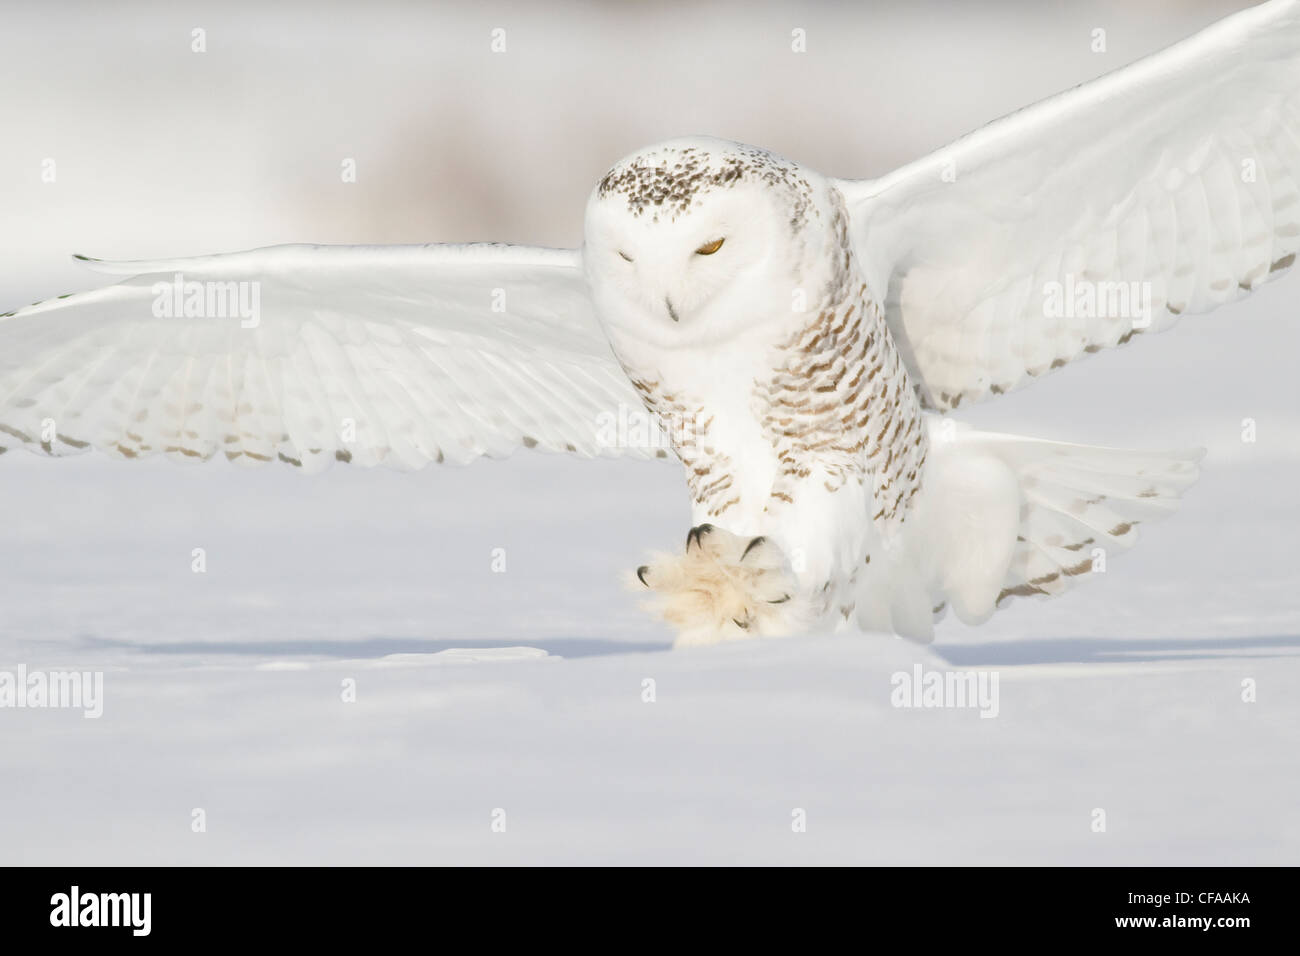 Winter's For Hunting Prey